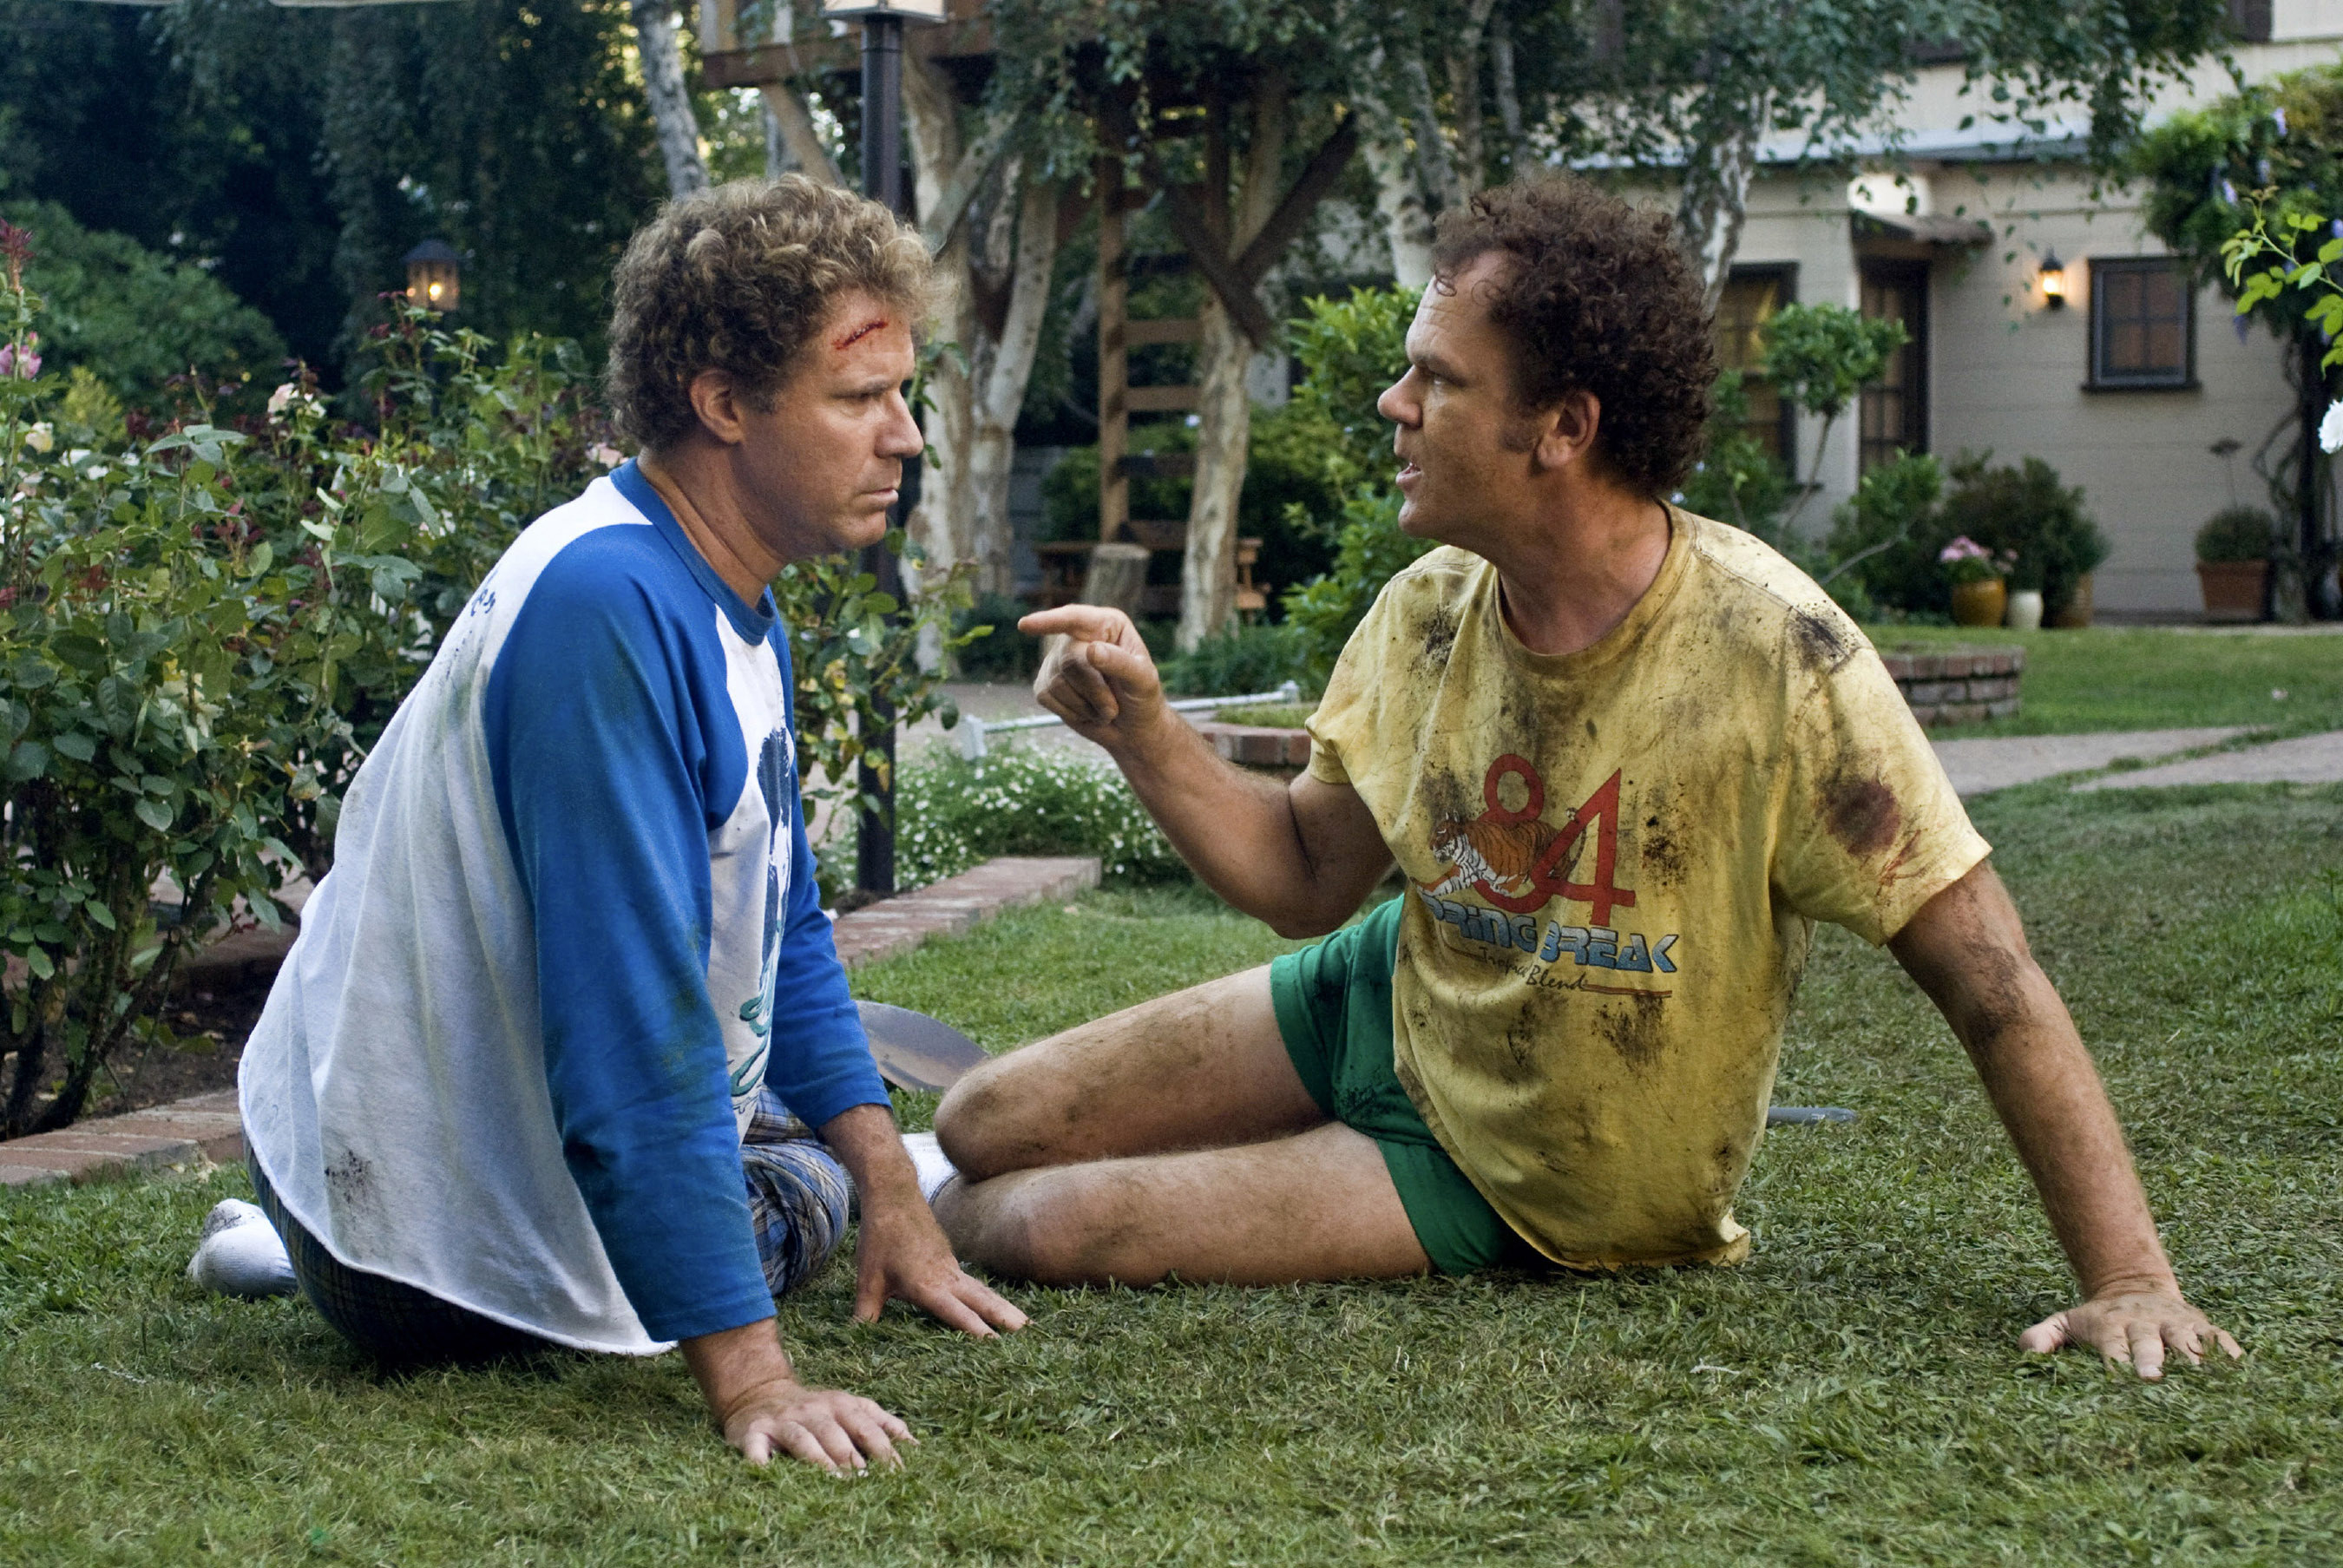 STEP BROTHERS, from left: Will Ferrell, John C. Reilly